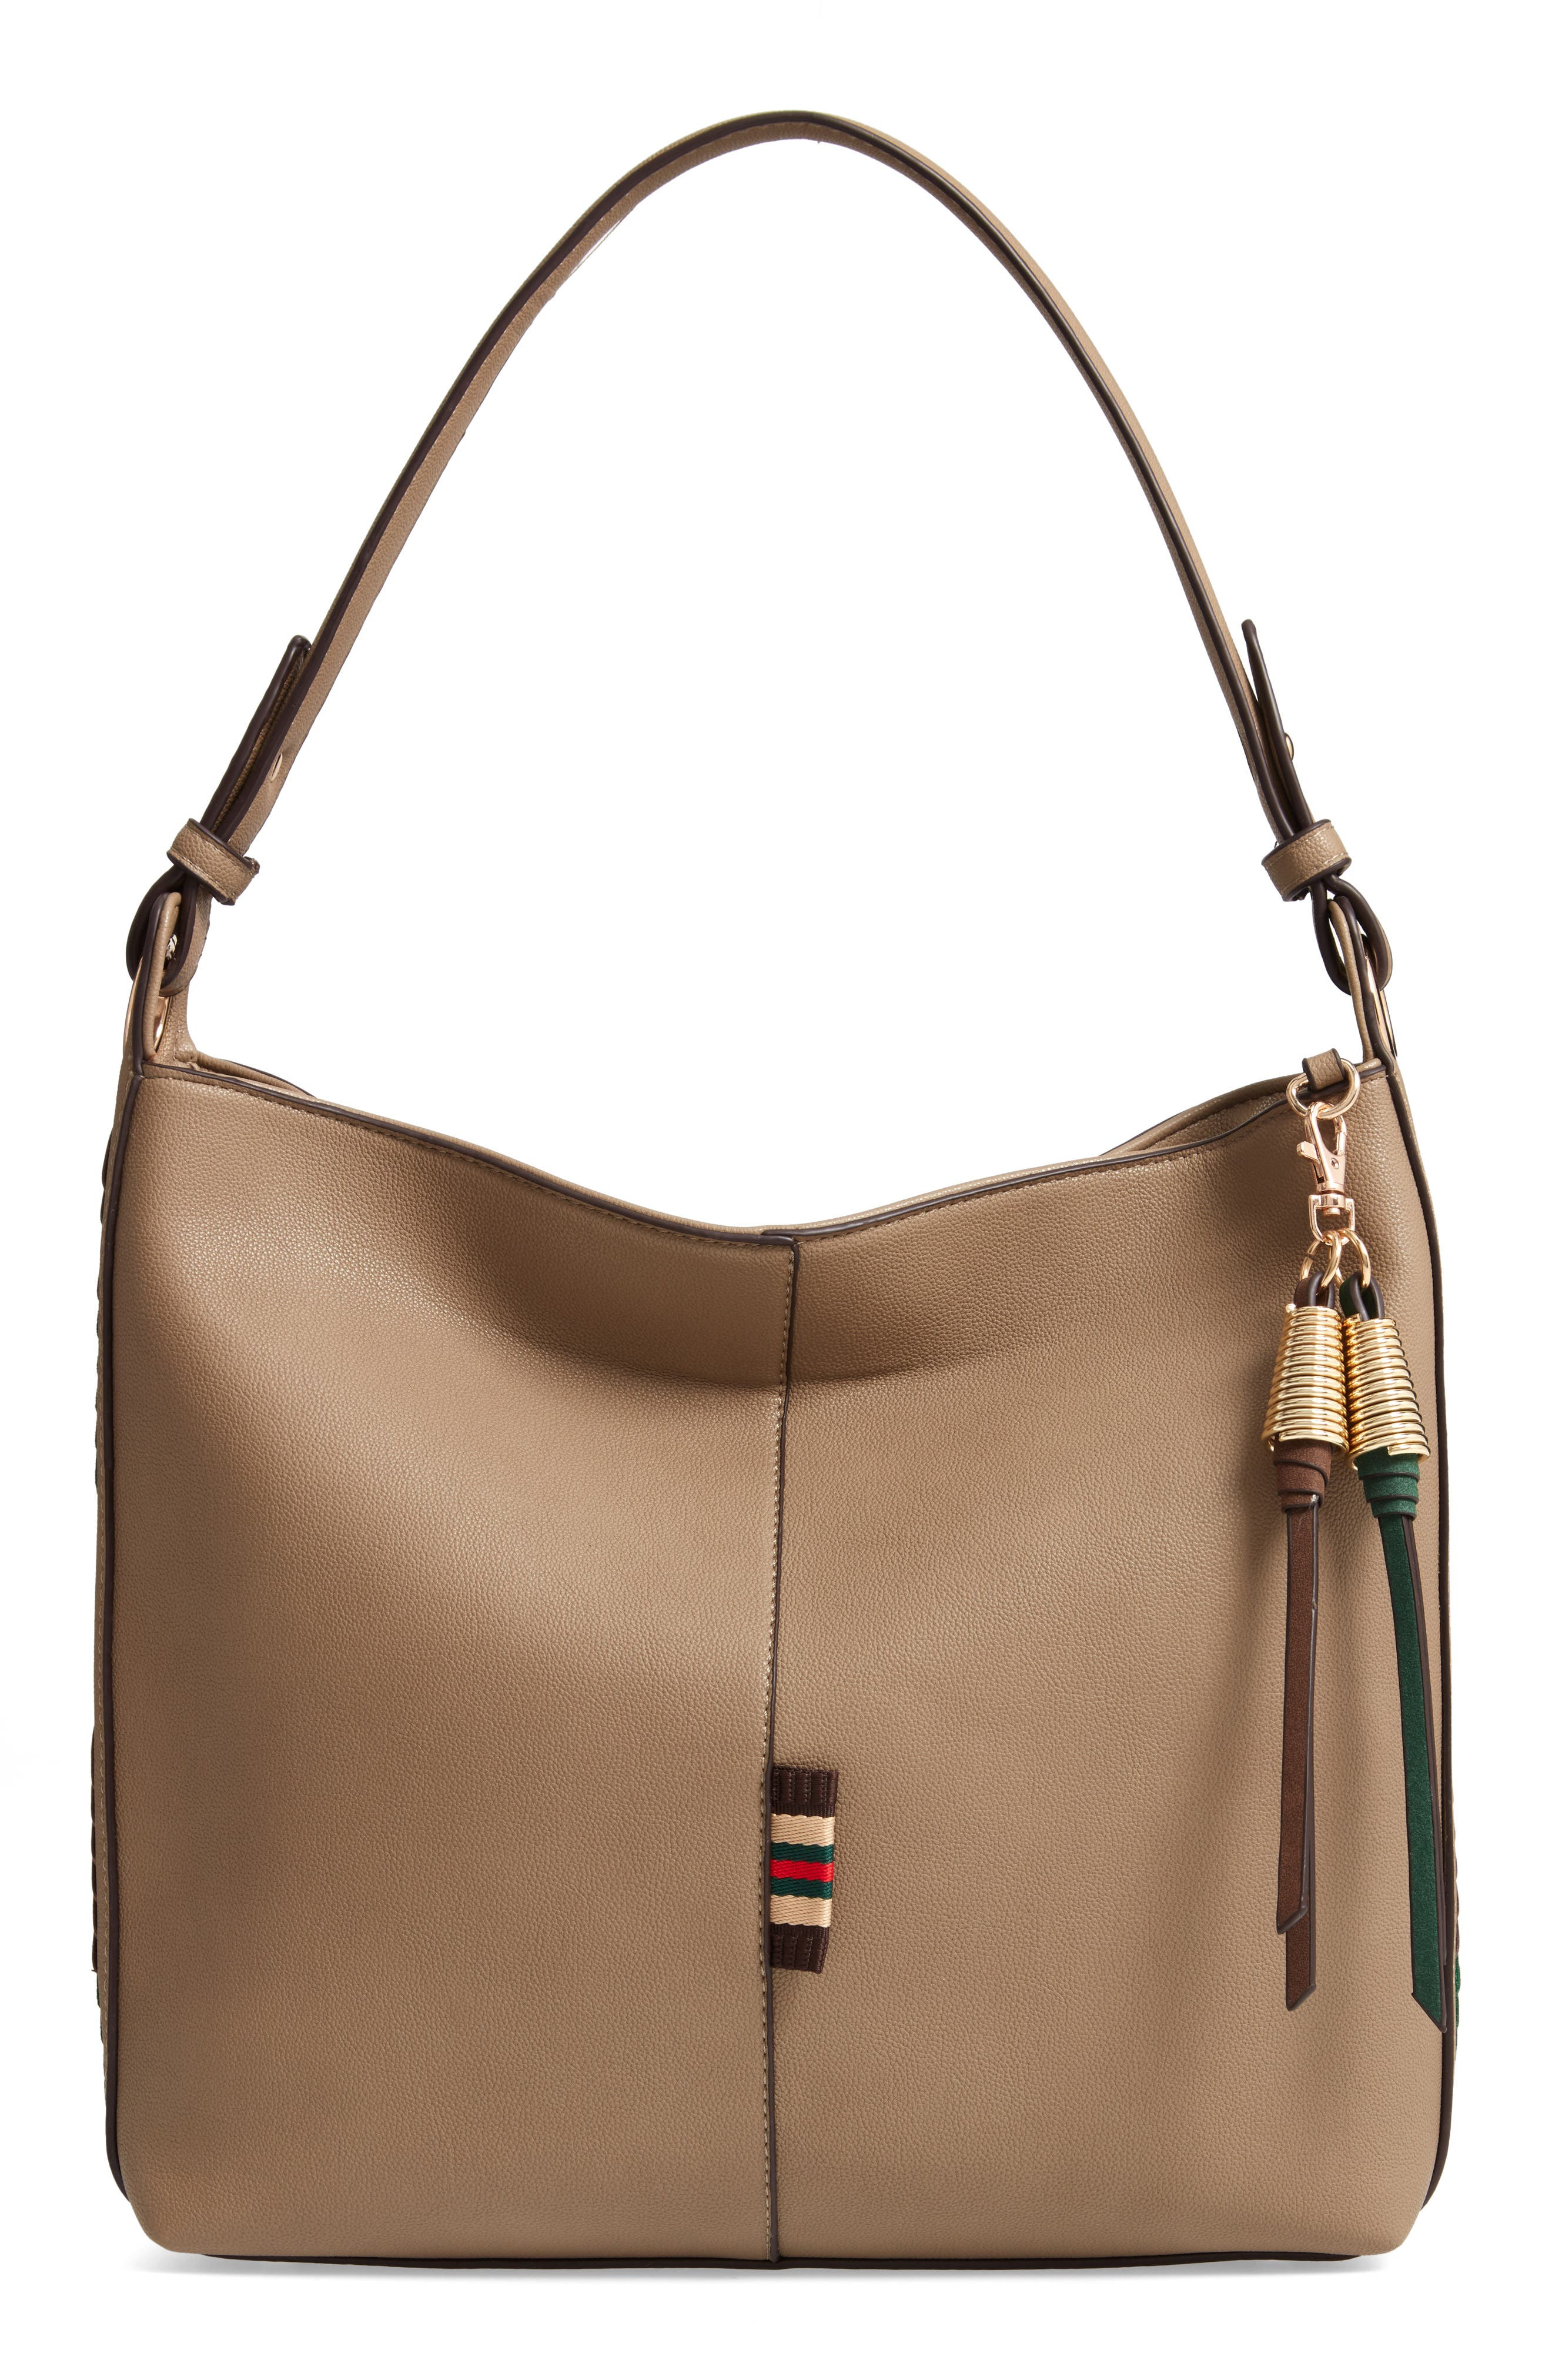 SONDRA ROBERTS Faux Leather Hobo - Beige in Taupe